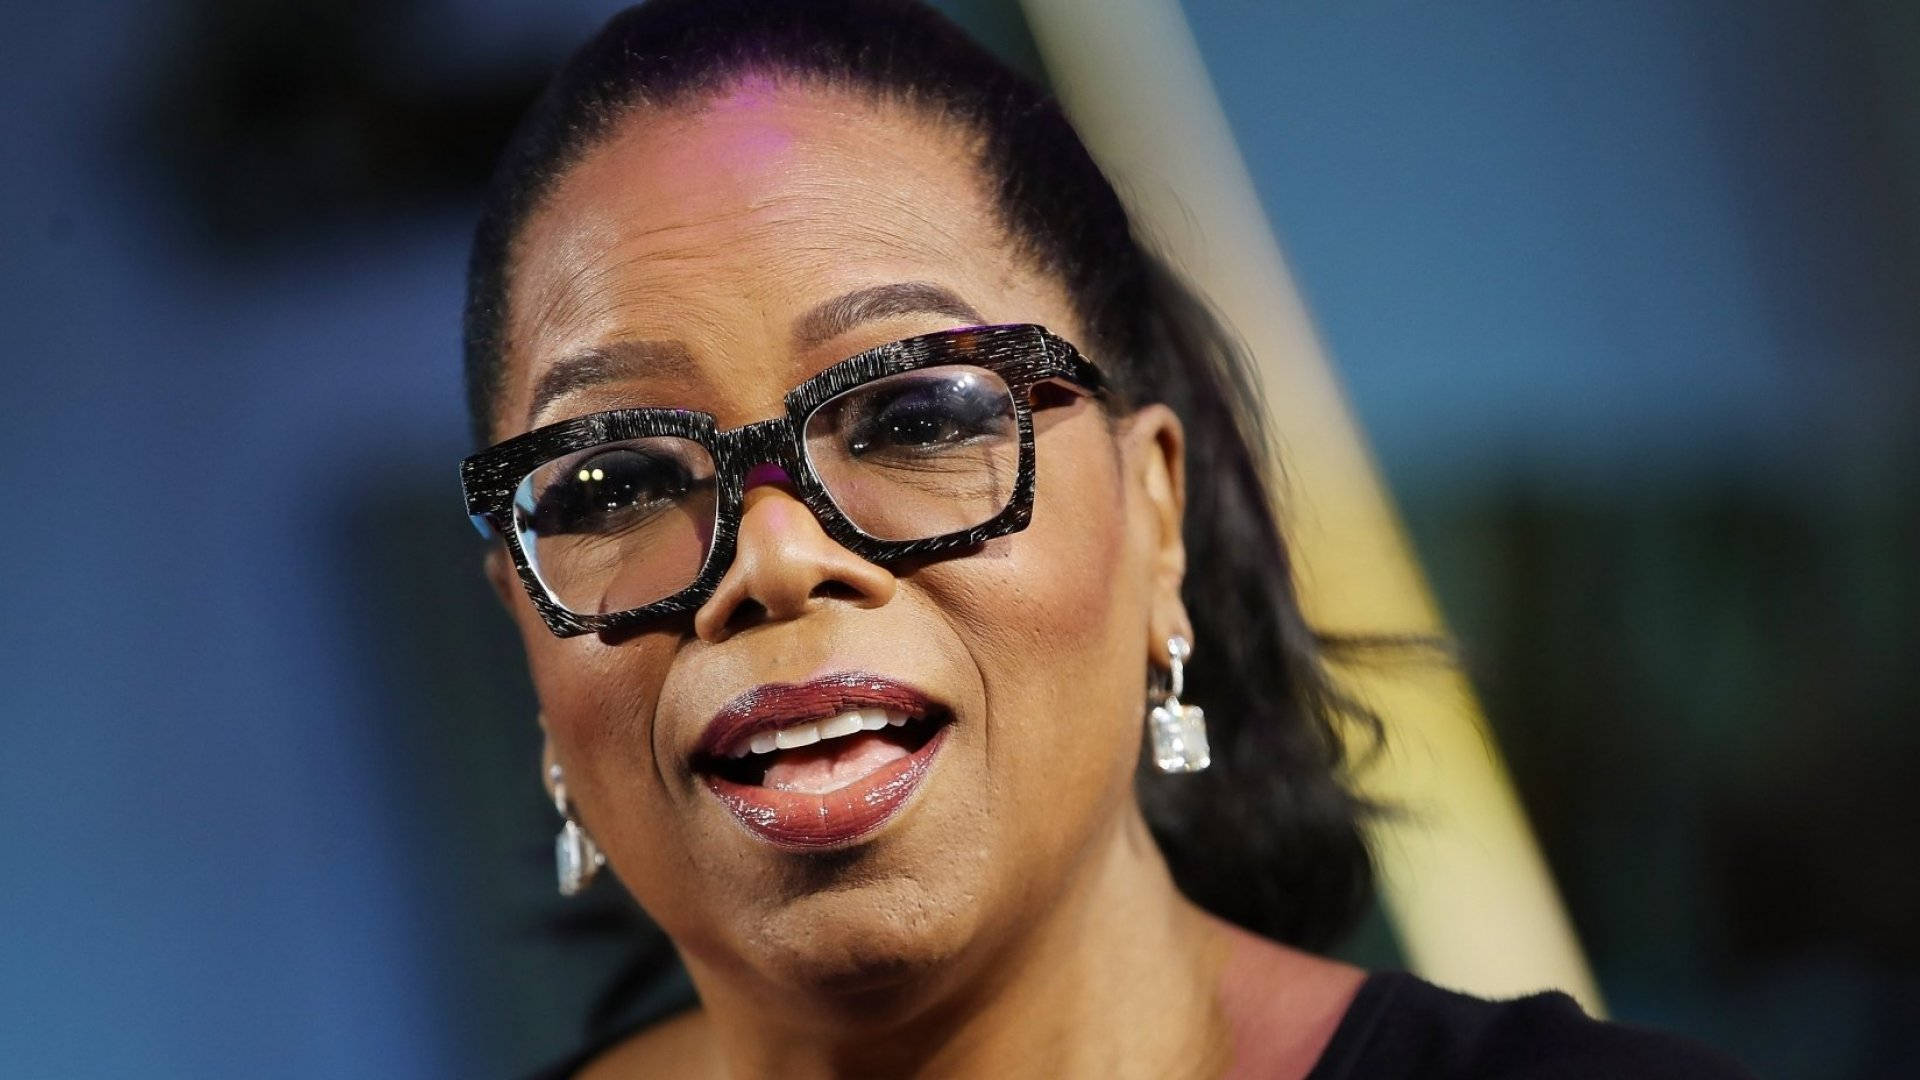 Oprah Just Gave the Real Reason She Left 60 Minutes. It's a Lesson In Being Your Authentic Self